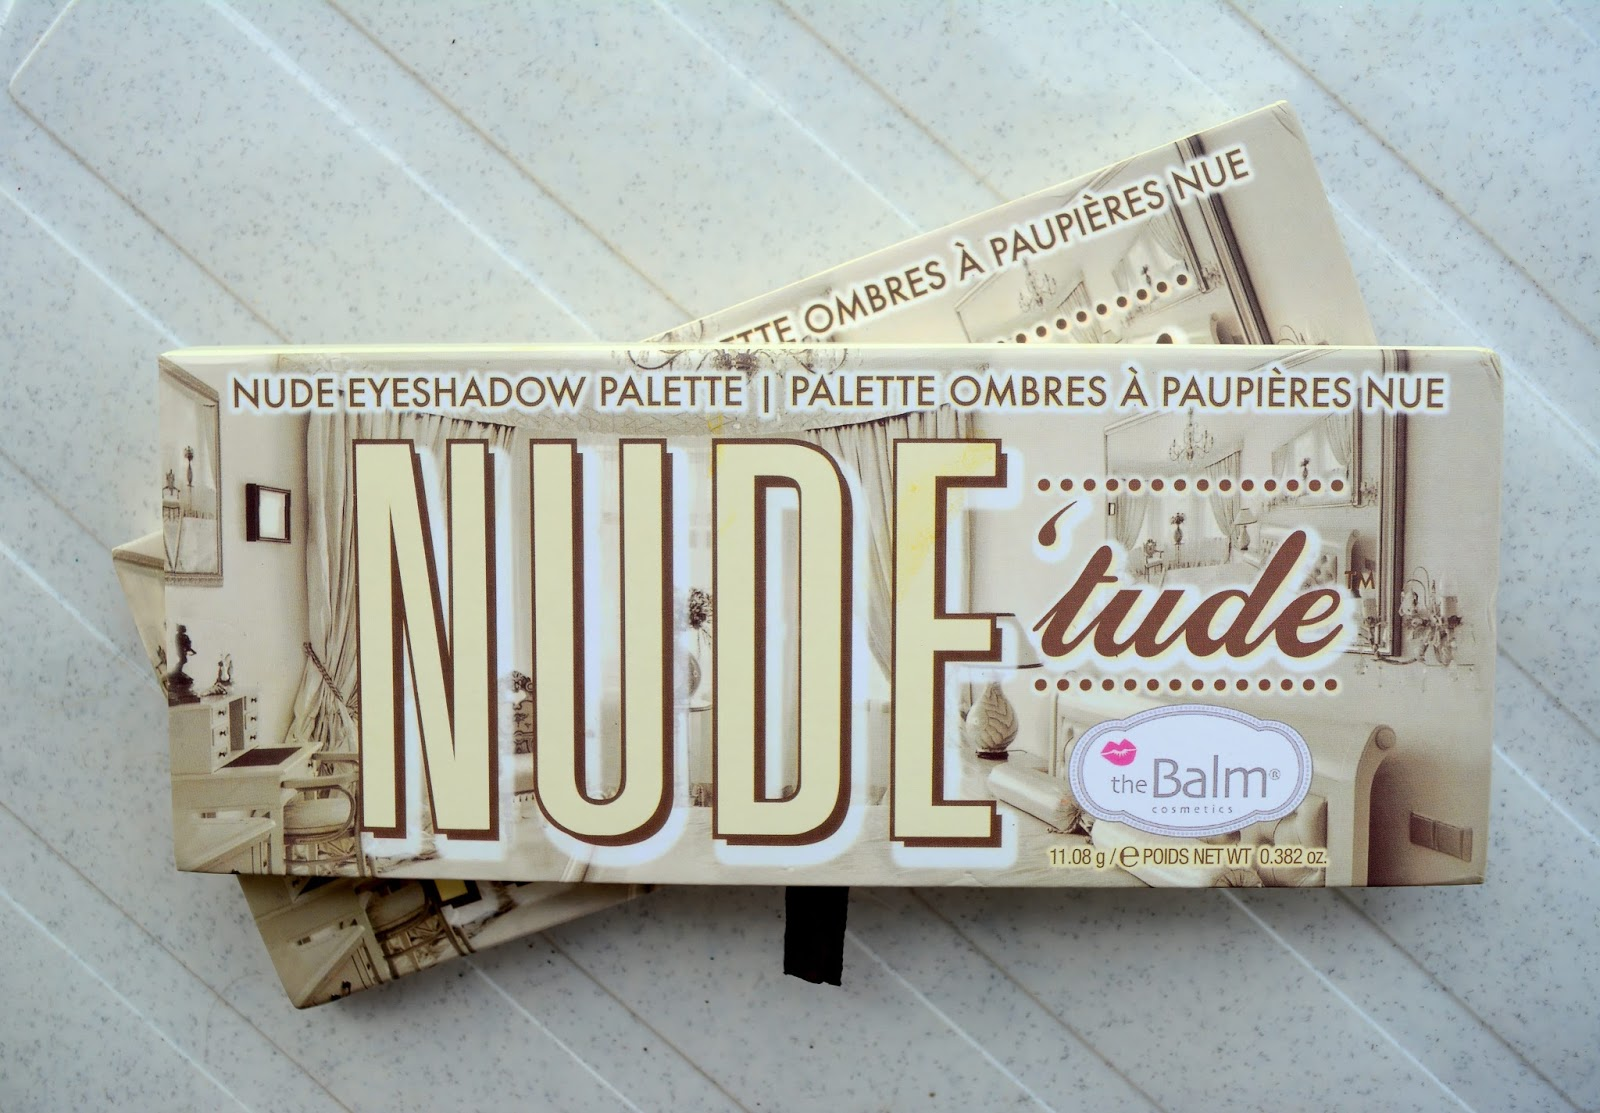 theBalm Nude Tude Eyeshadow Palette Review & Swatch